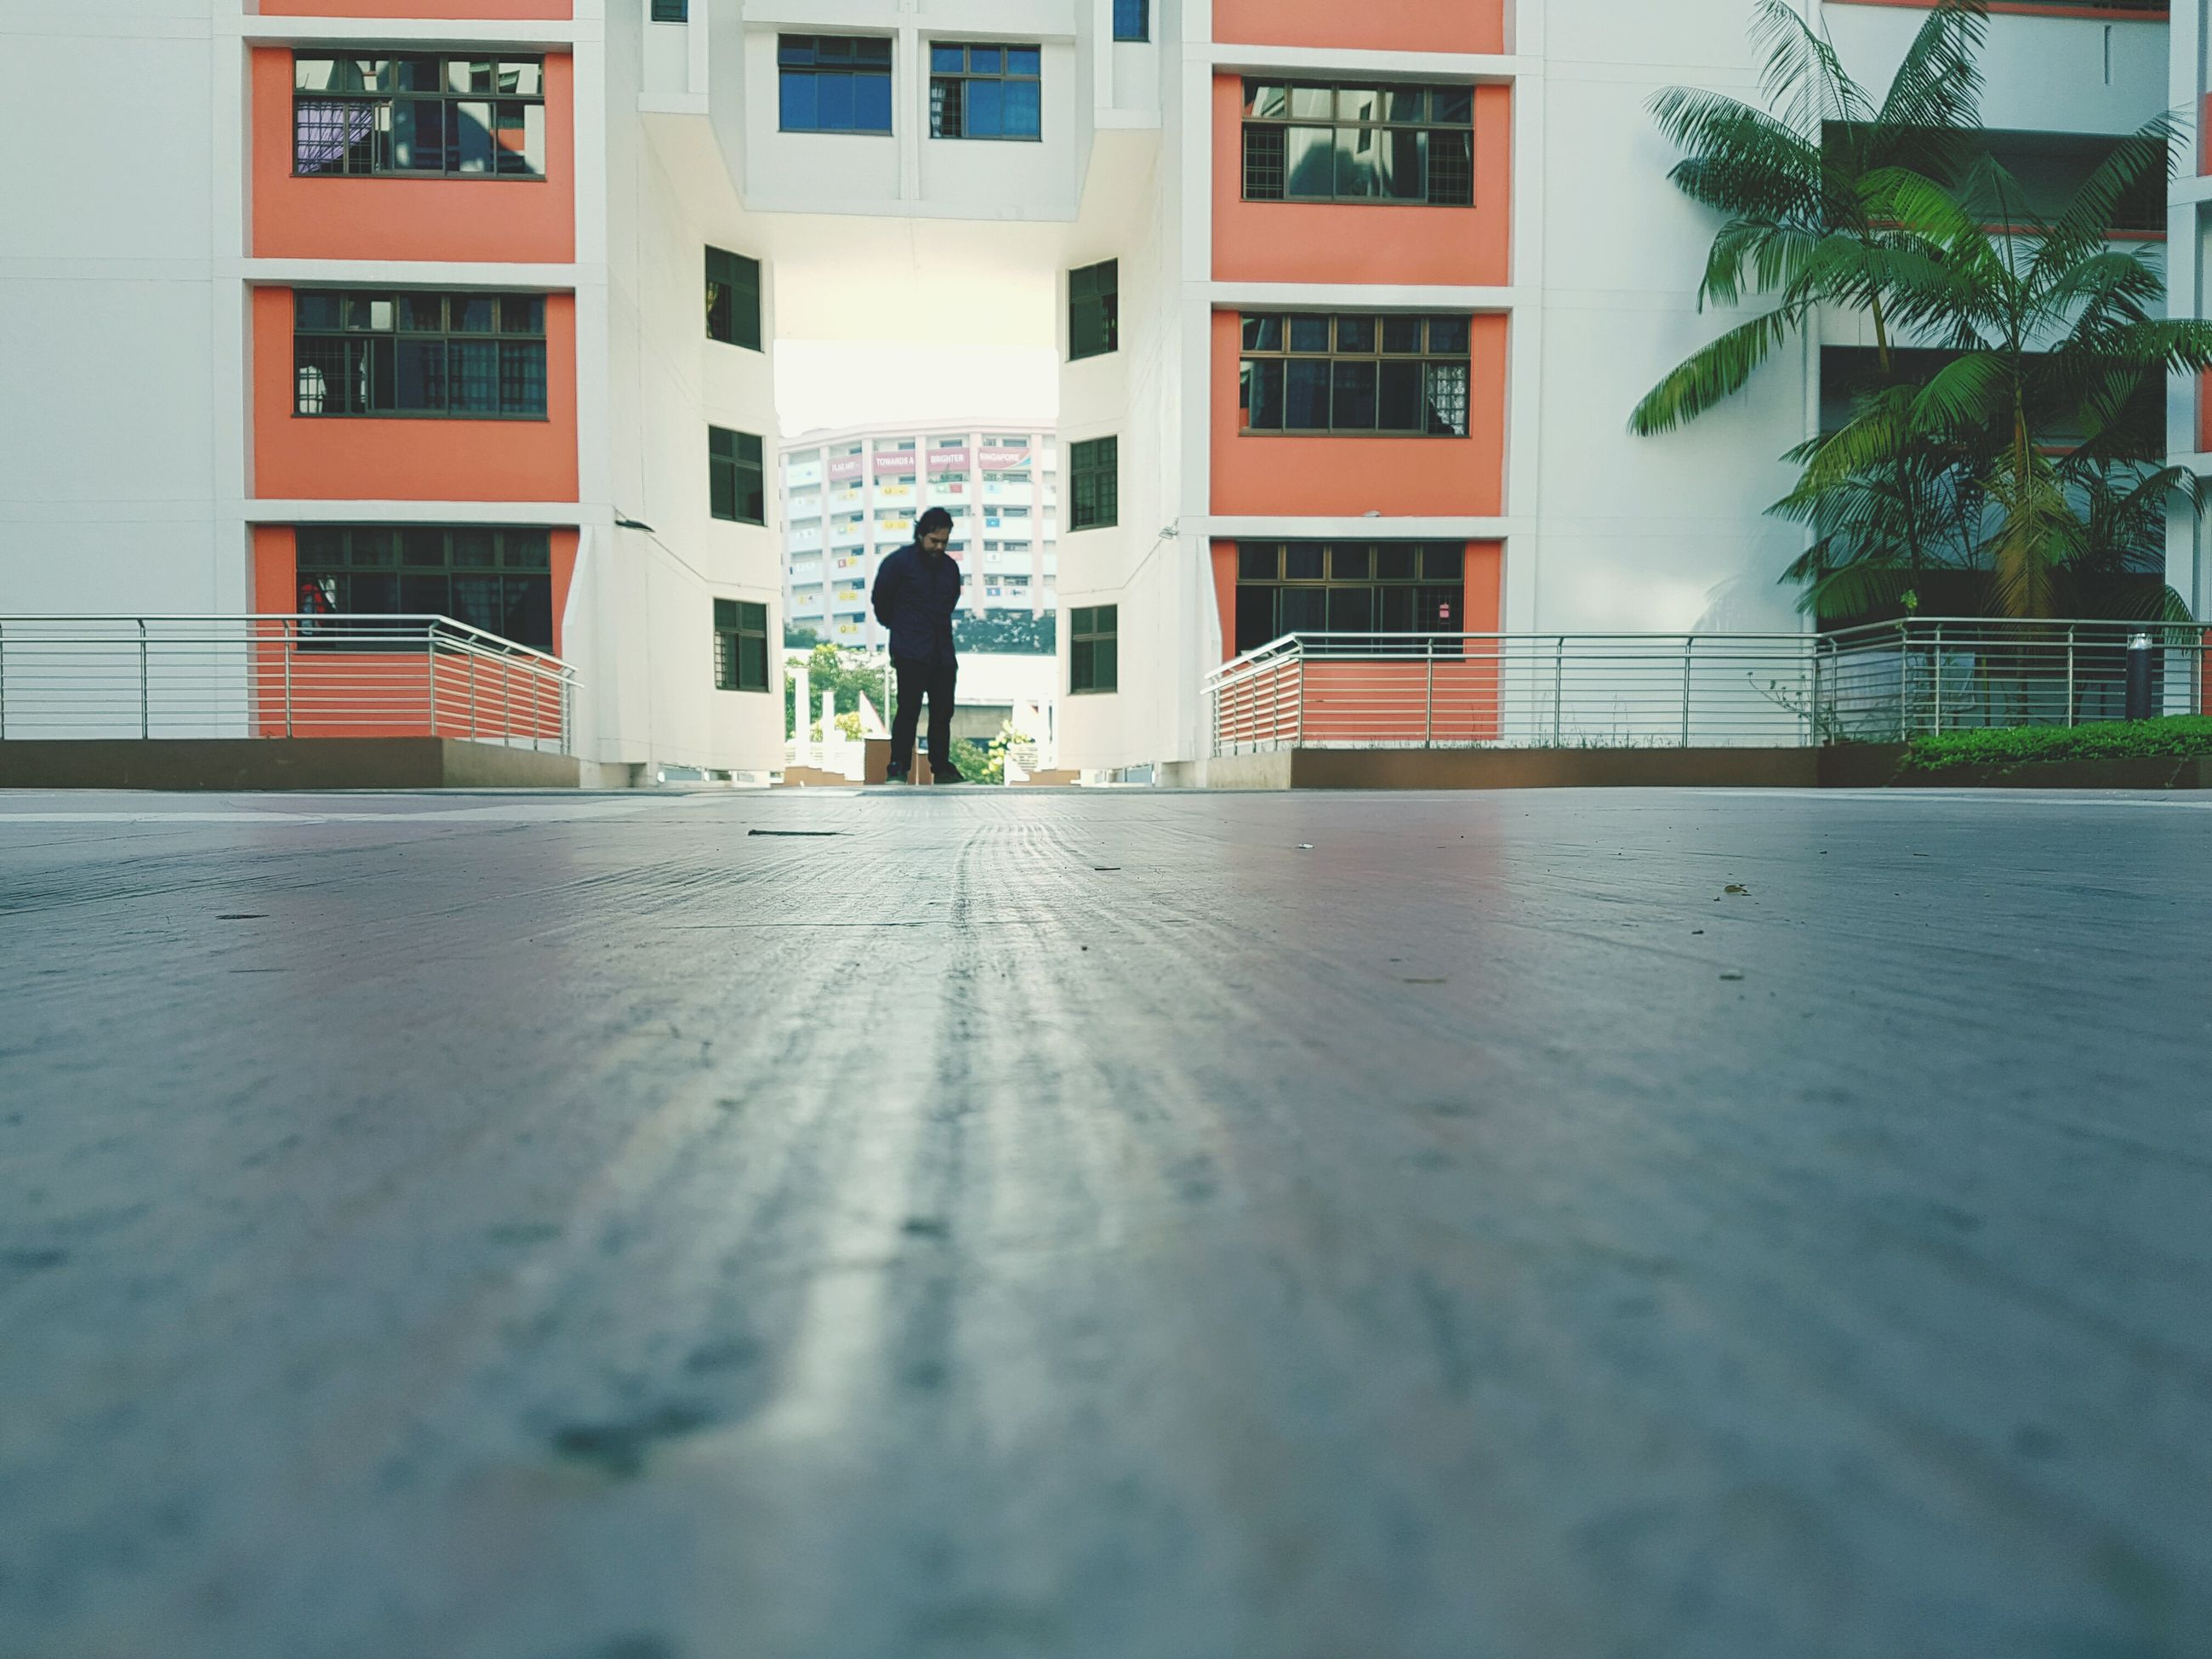 building exterior, architecture, built structure, men, full length, city, day, person, outdoors, paving stone, the way forward, surface level, footpath, city life, residential district